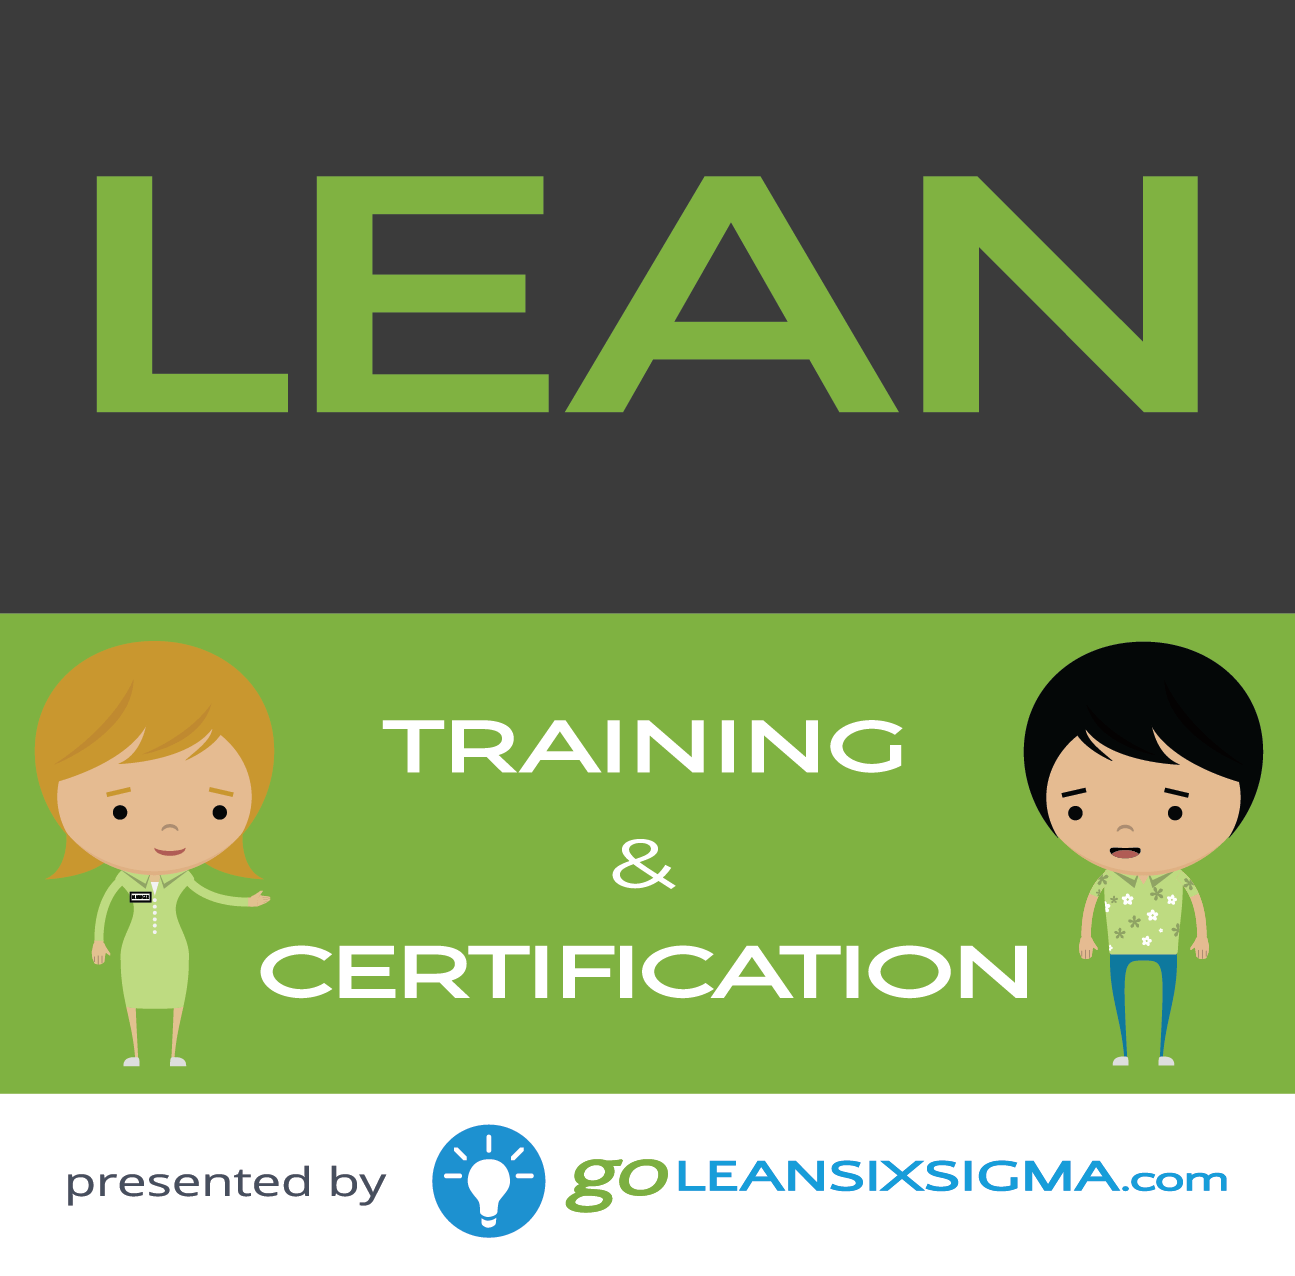 Lean Training & Certification